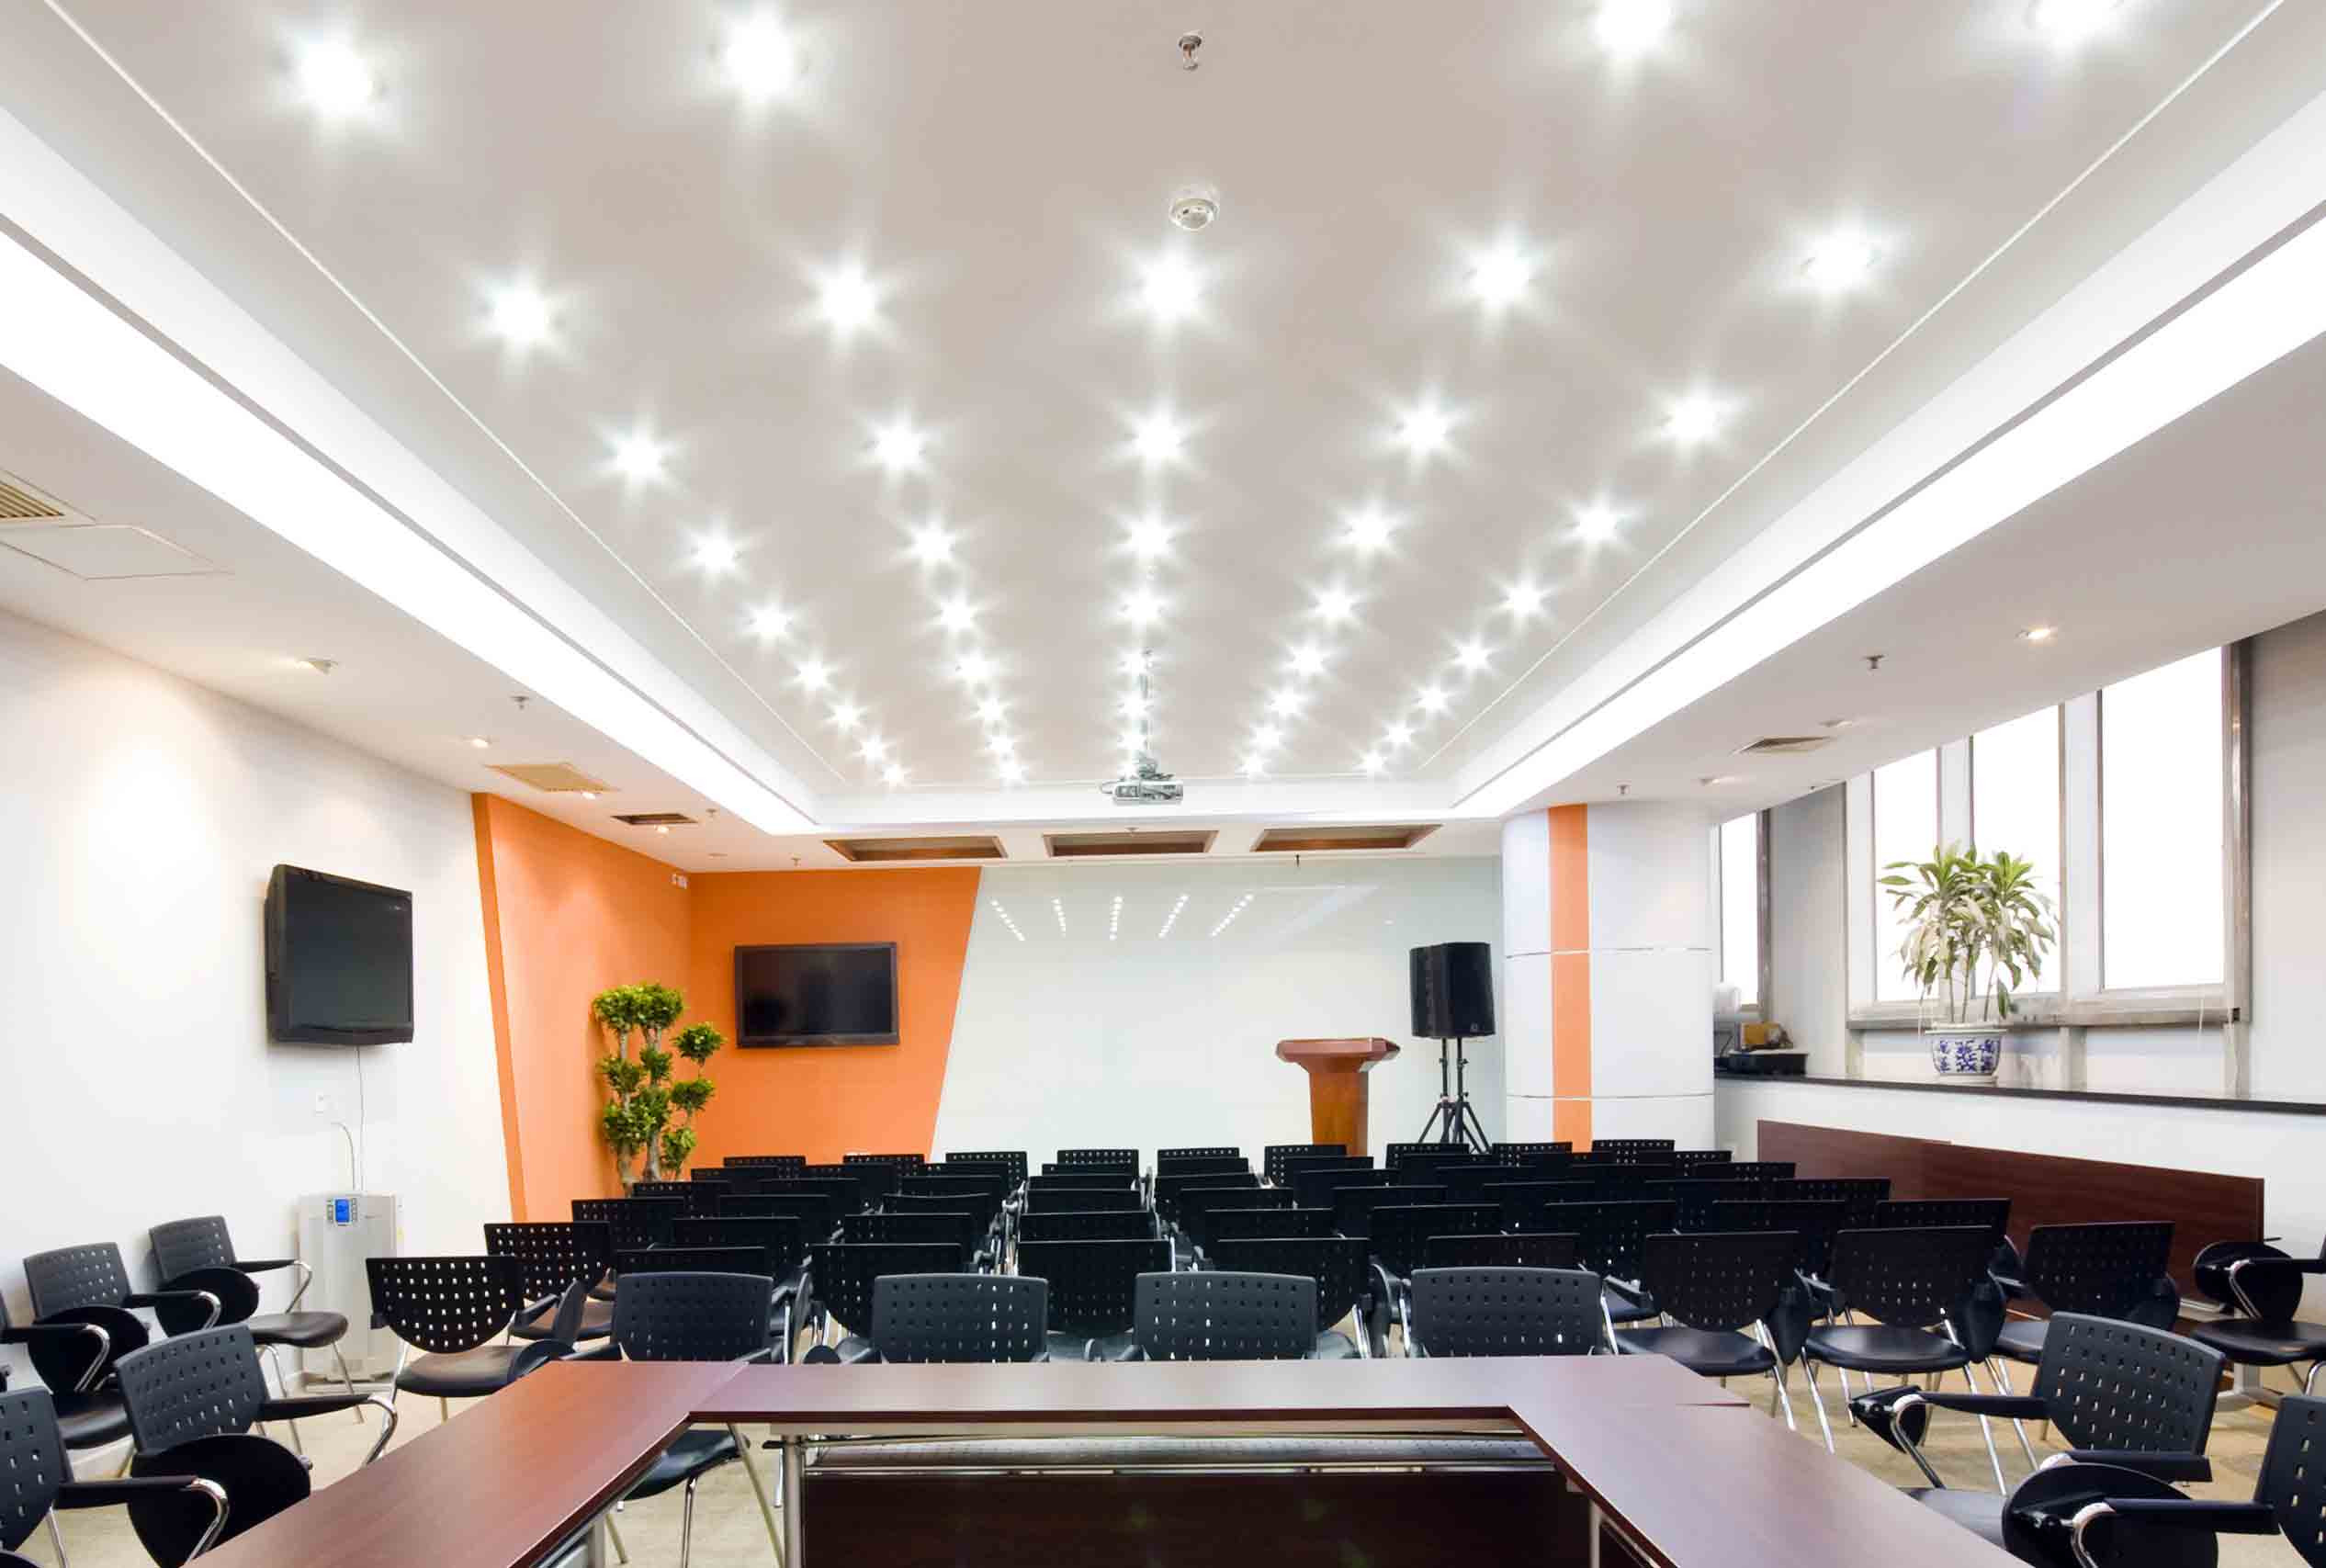 Best ideas about Commercial Led Lighting . Save or Pin Led Light Design Remarkable mercial Led Lights Now.